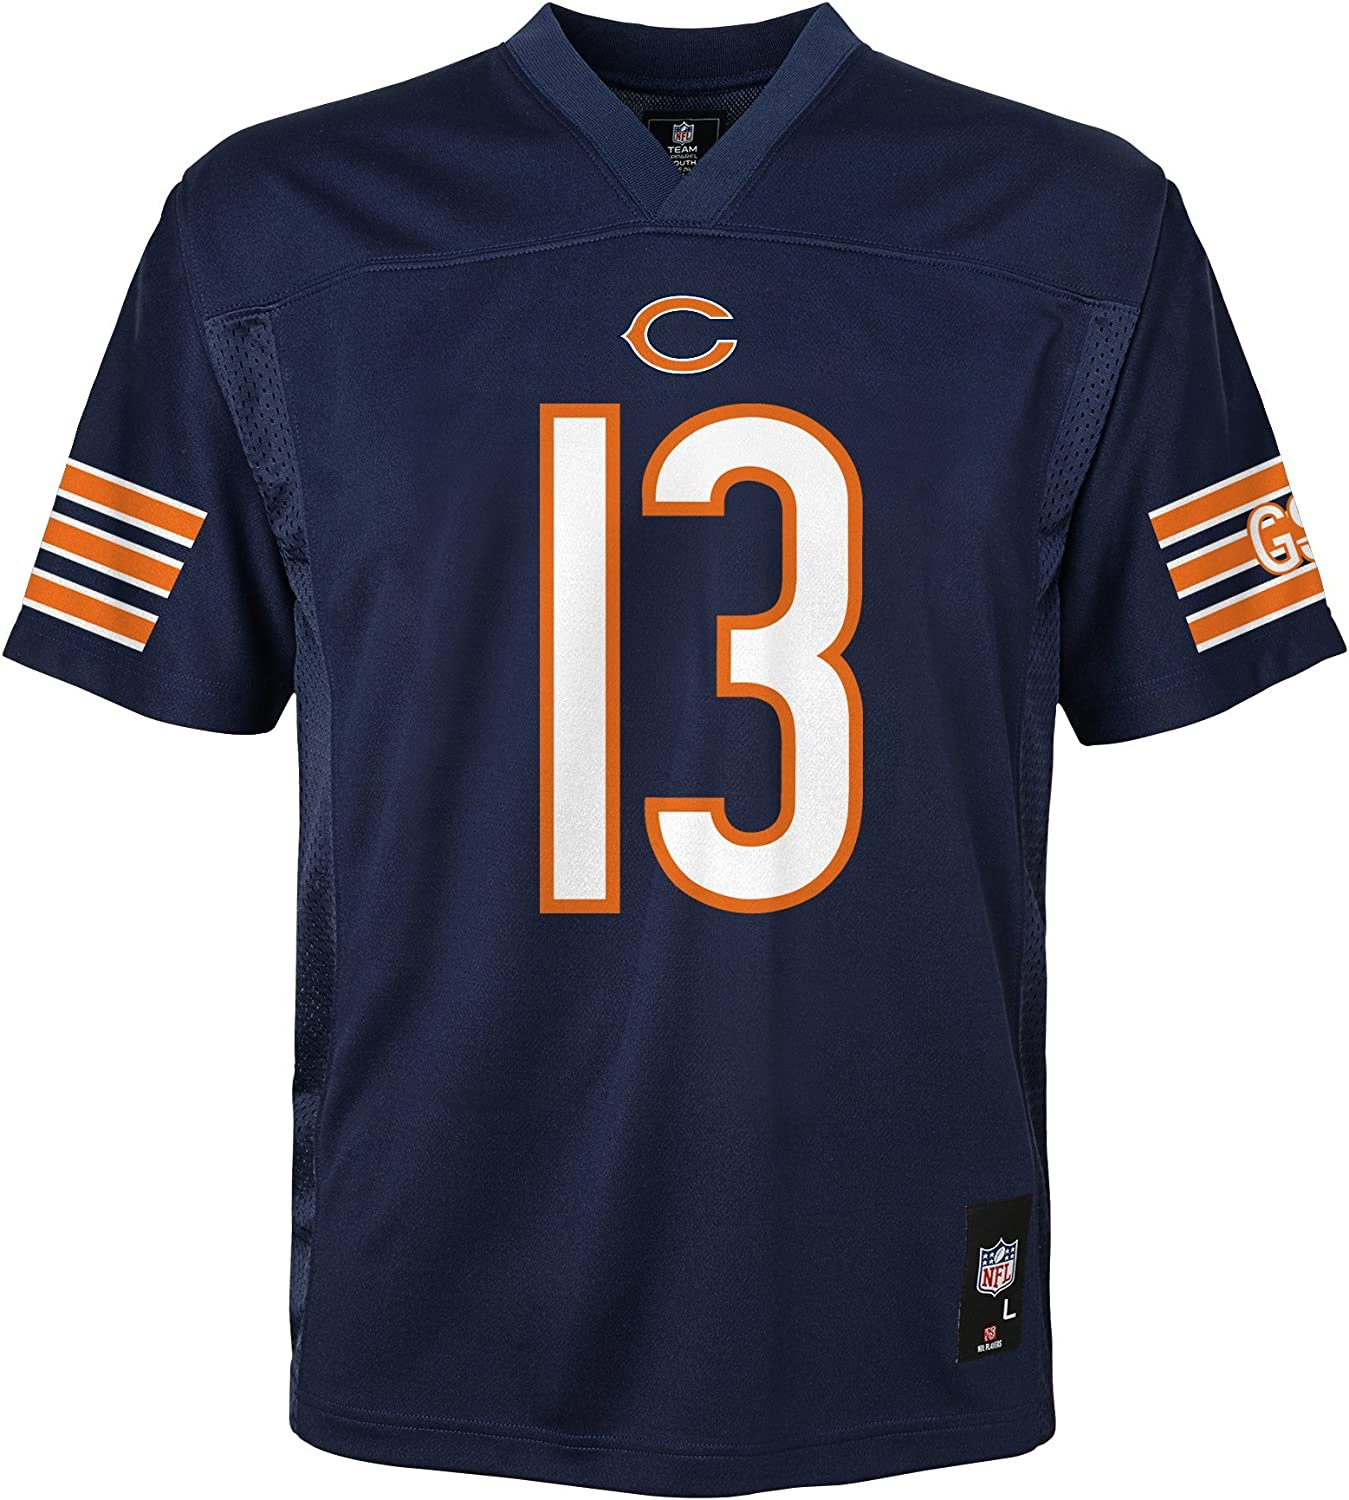 NFL Chicago Bears Youth Outerstuff Team